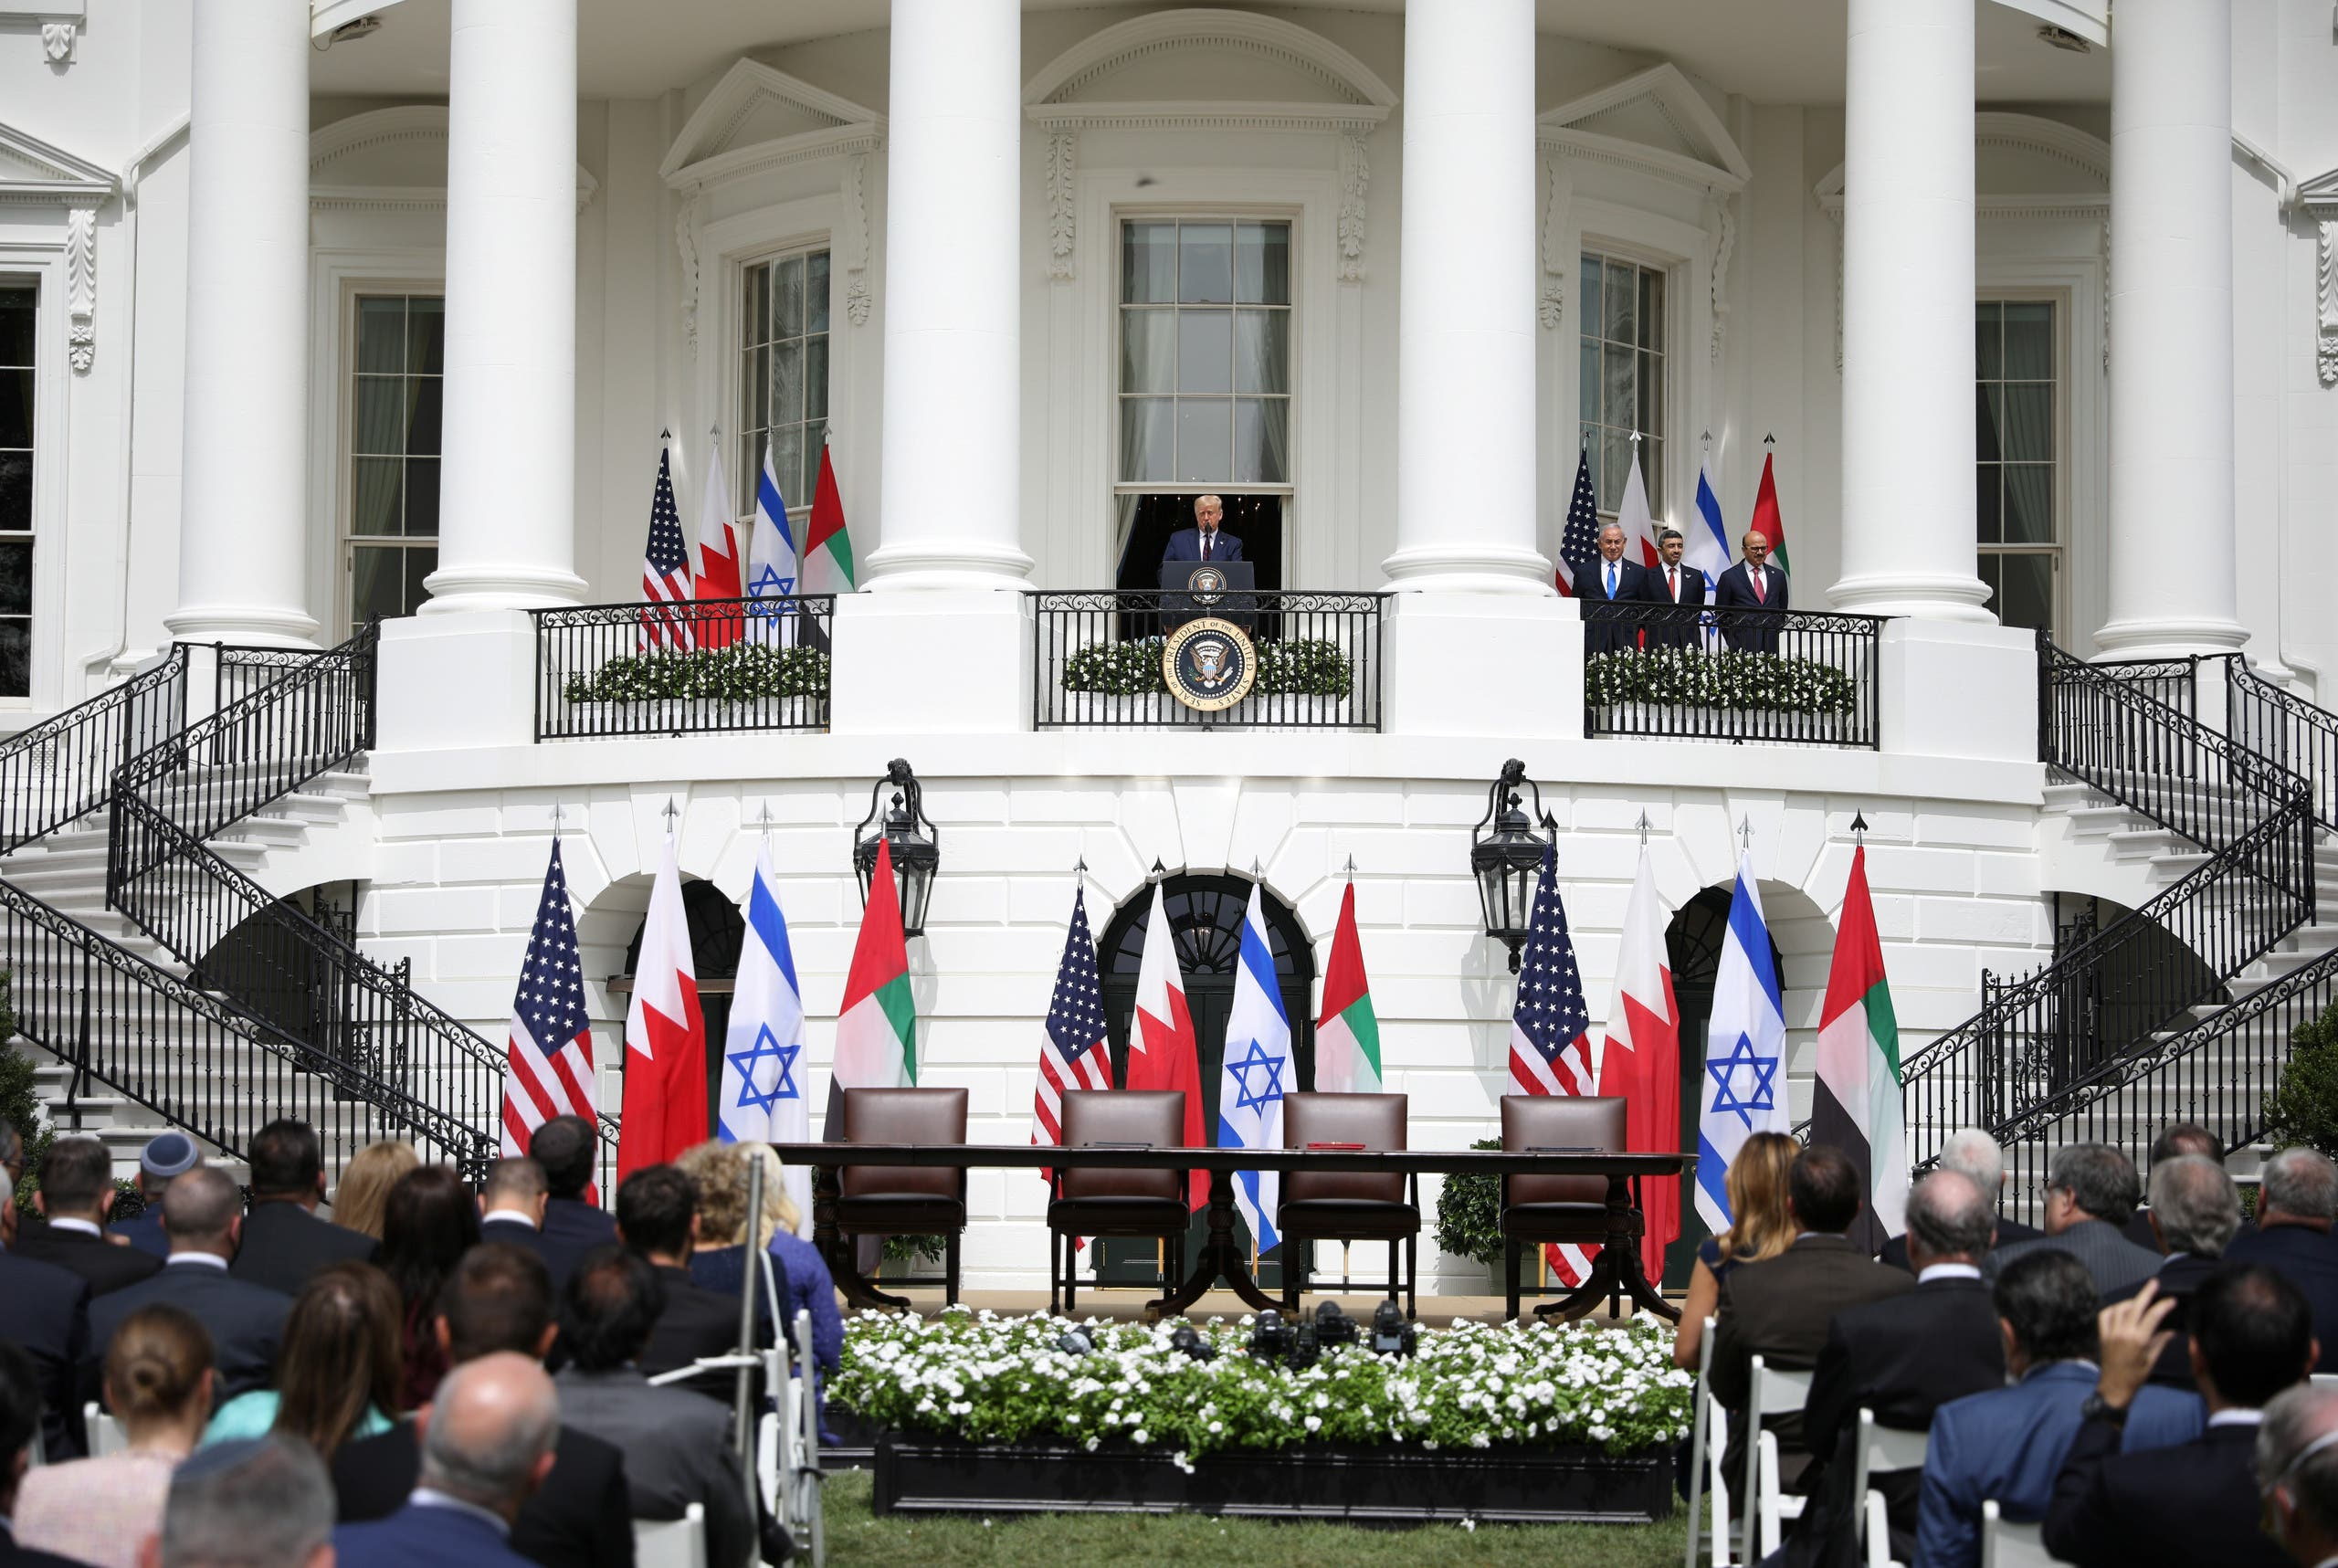 US President Donald Trump speaks as Israel's Prime Minister Benjamin Netanyahu, United Arab Emirates (UAE) Foreign Minister Abdullah bin Zayed and Bahrain's Foreign Minister Abdullatif Al Zayani listen before the signing of the Abraham Accords, normalizing relations between Israel and some of its Middle East neighbors, in Washington, US, September 15, 2020. (Reuters)